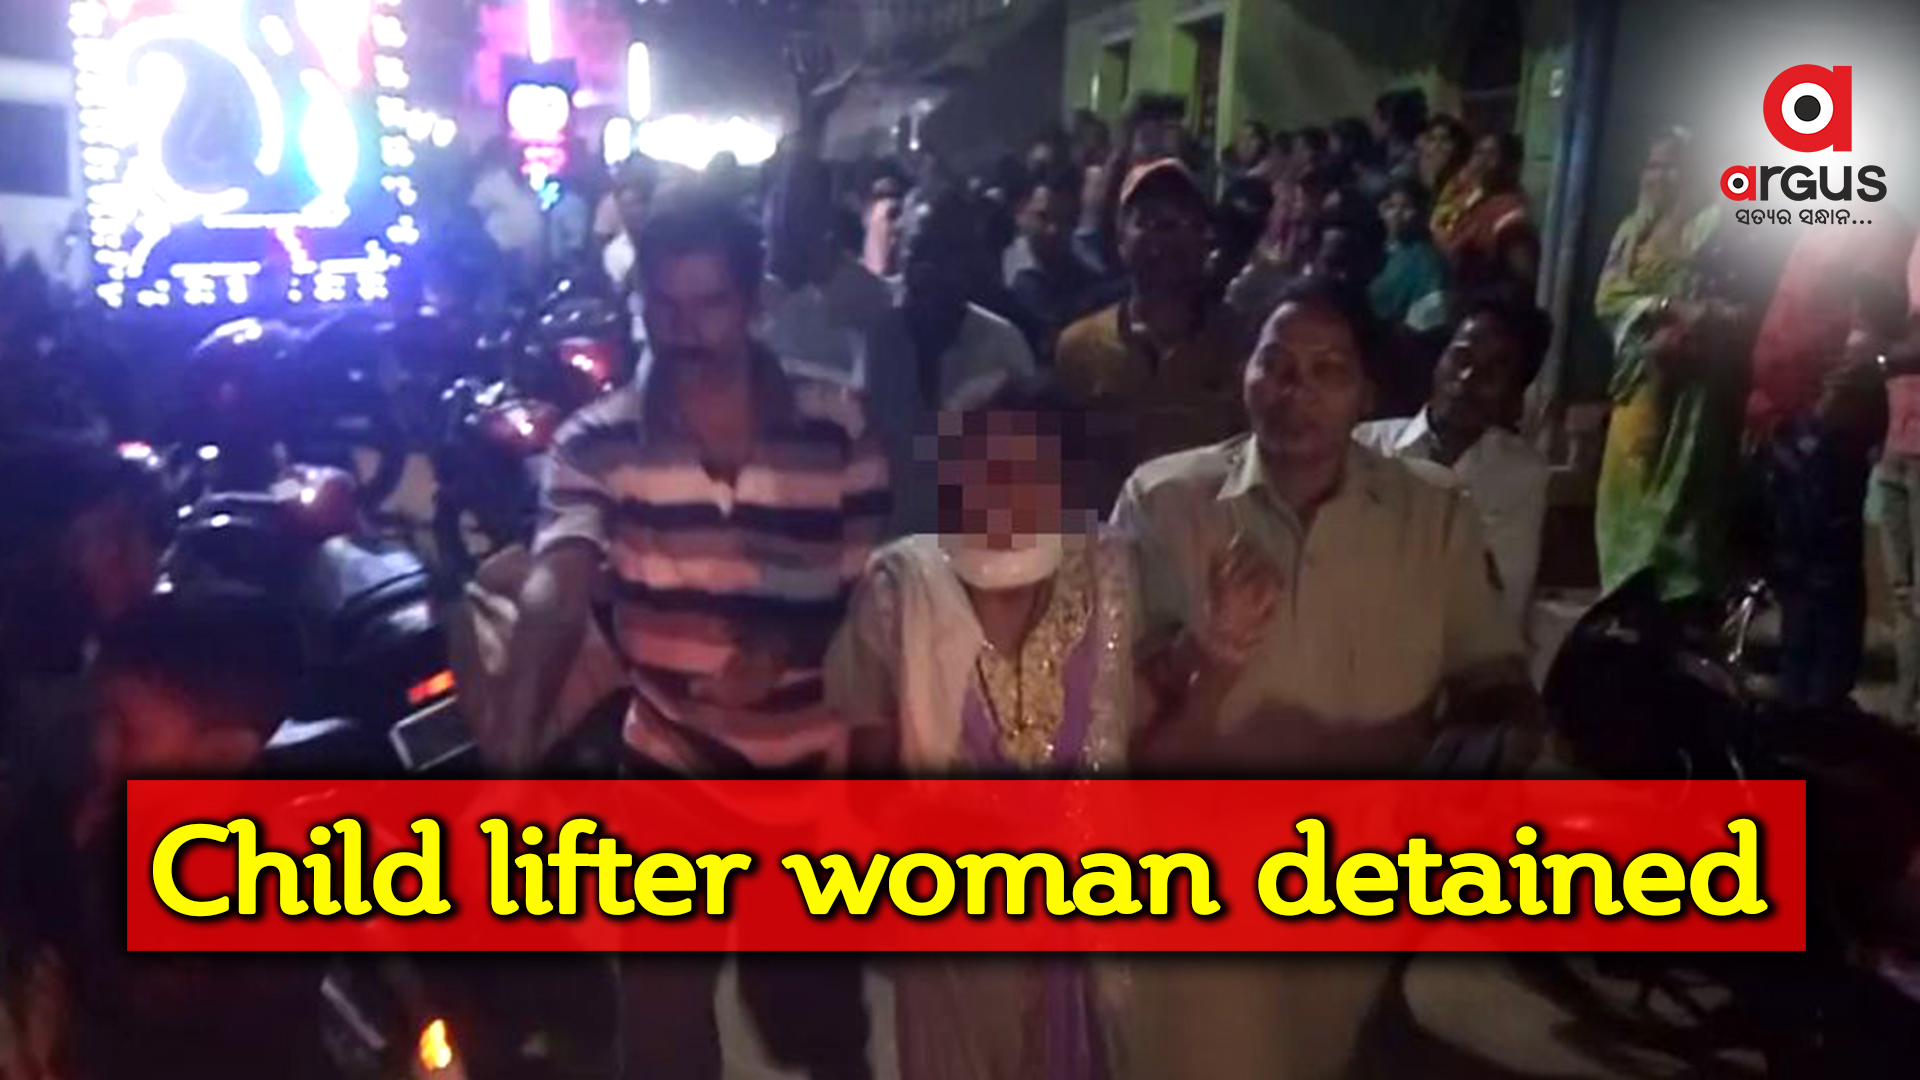 Villagers detain woman on suspicion of being child lifter in Mayurbhanj